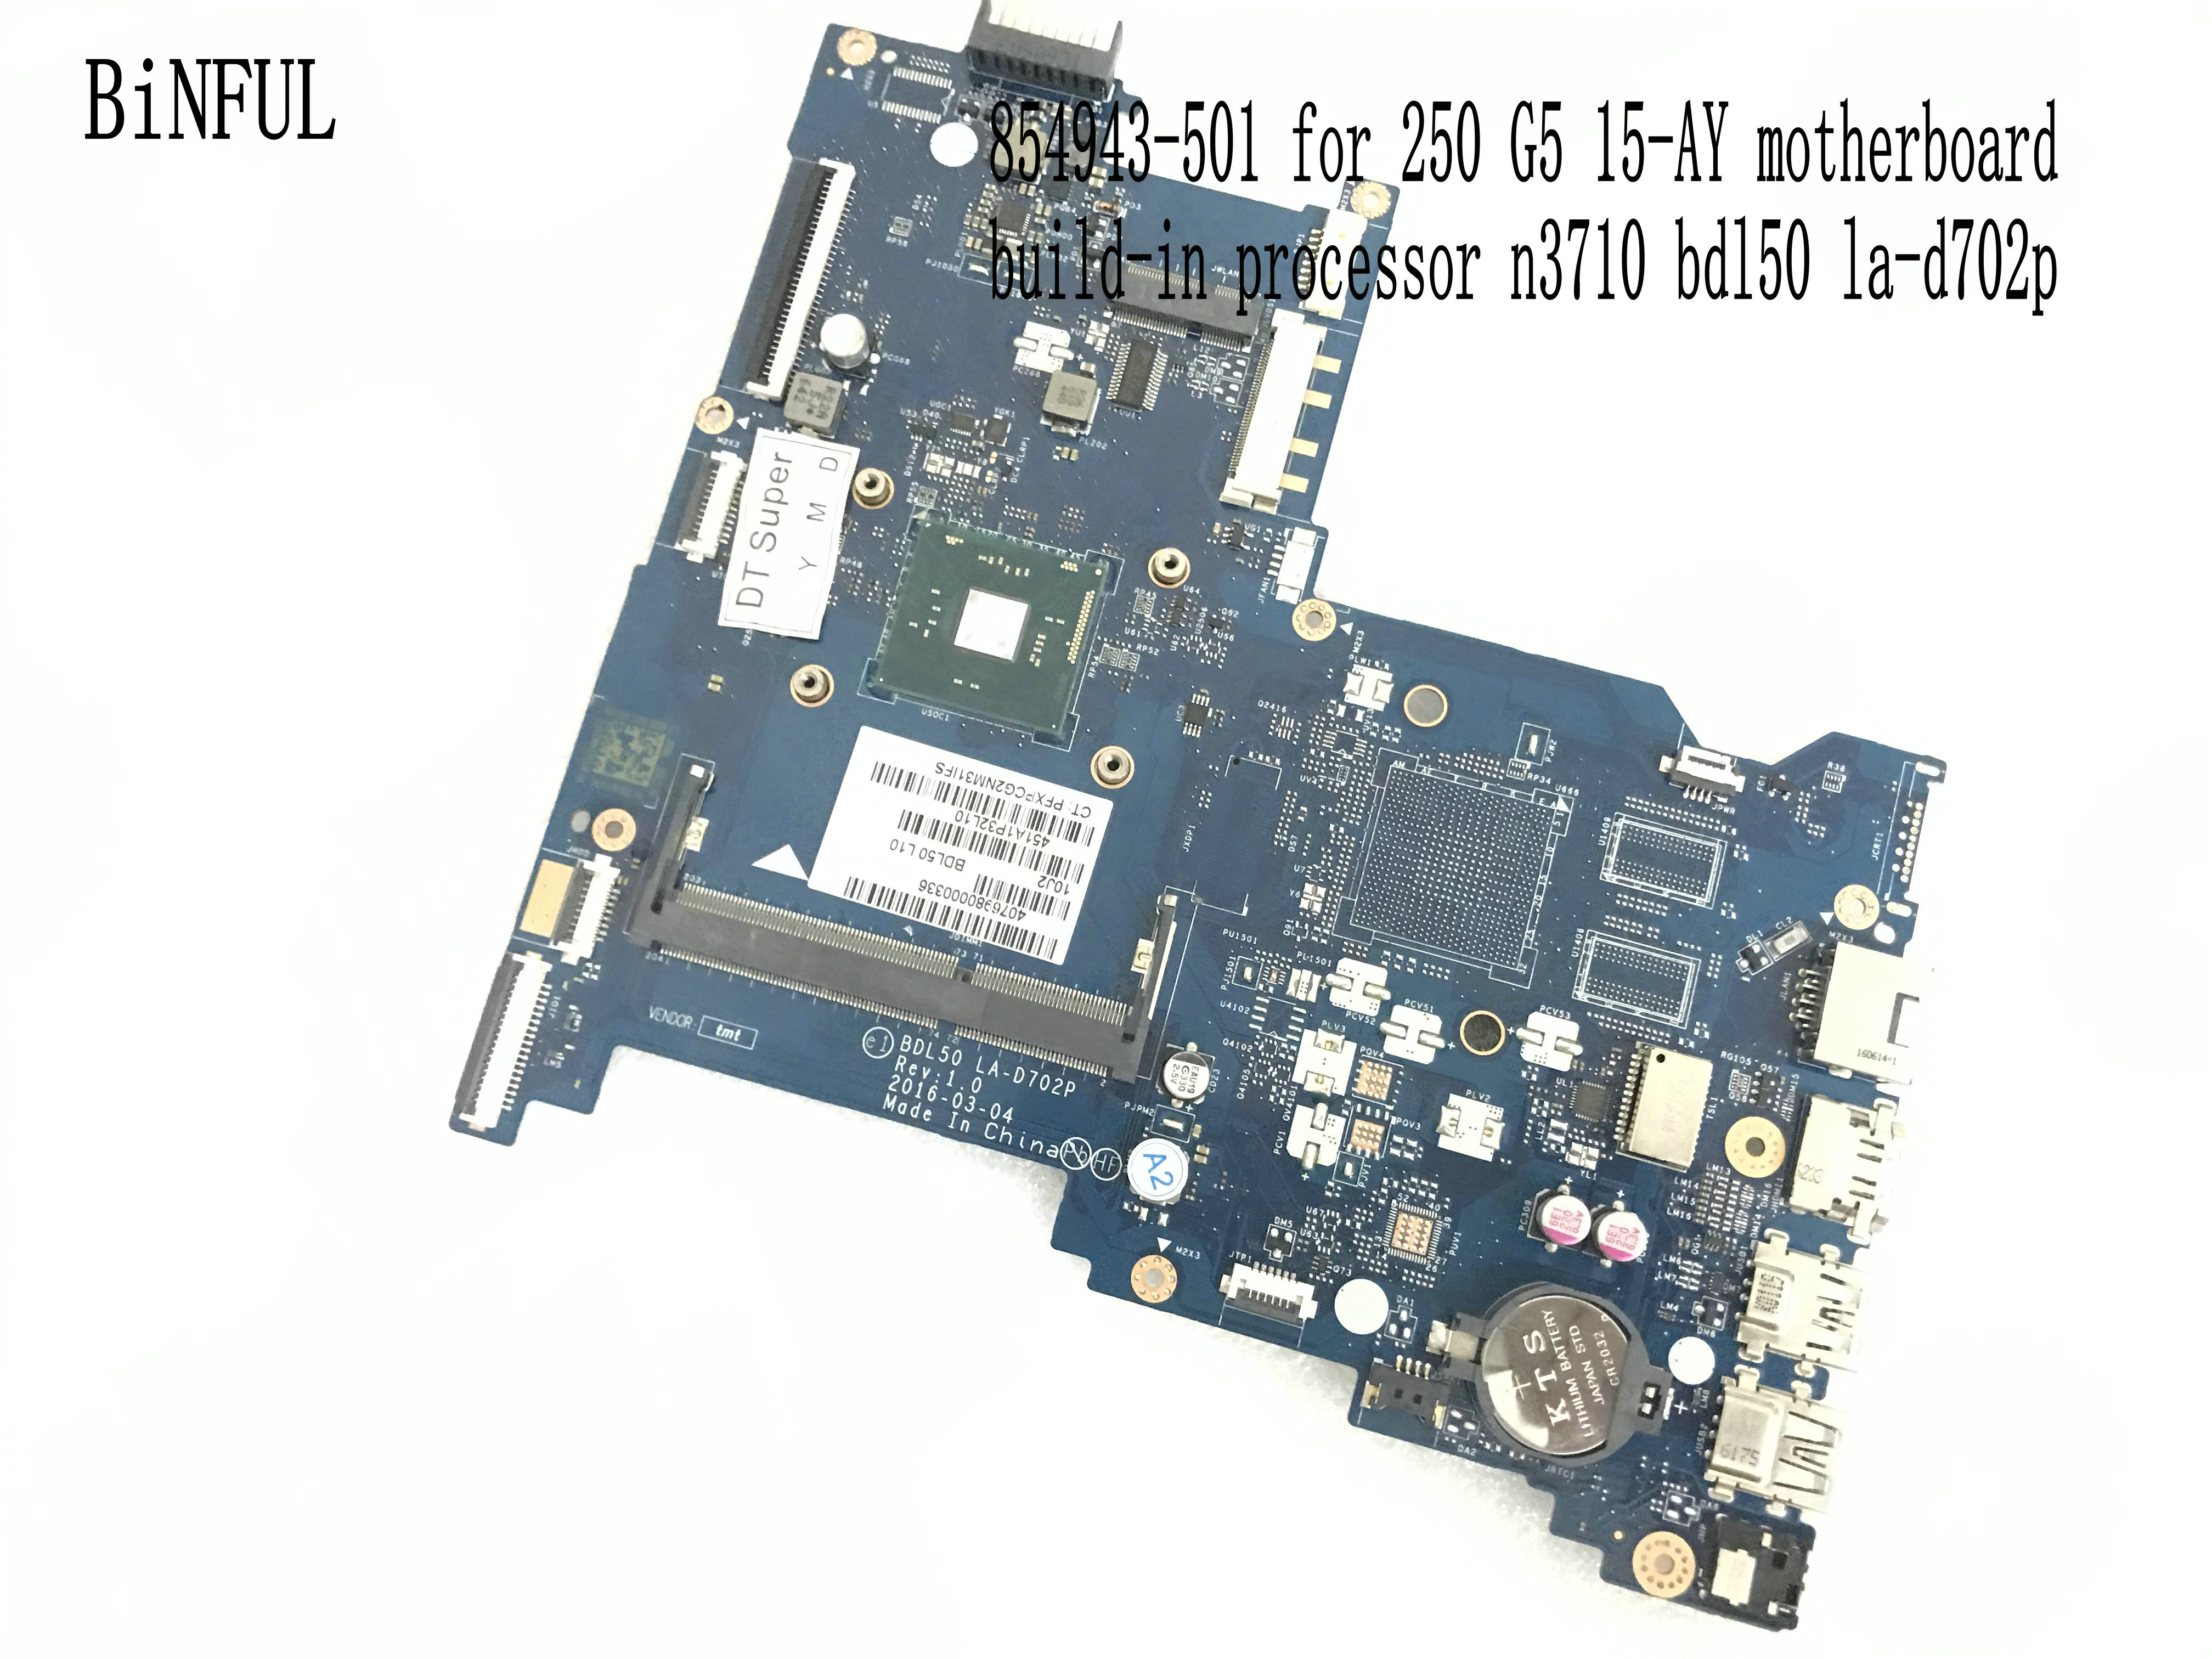 BiNFUL STOCK NEW ITEM , BDL50 LA-D702P LAPTOP MOTHERBOARD FOR HP 250 G5 / 15-AY / 15-AU NOTEBOOK, BUILD-IN PROCESSOR N3710